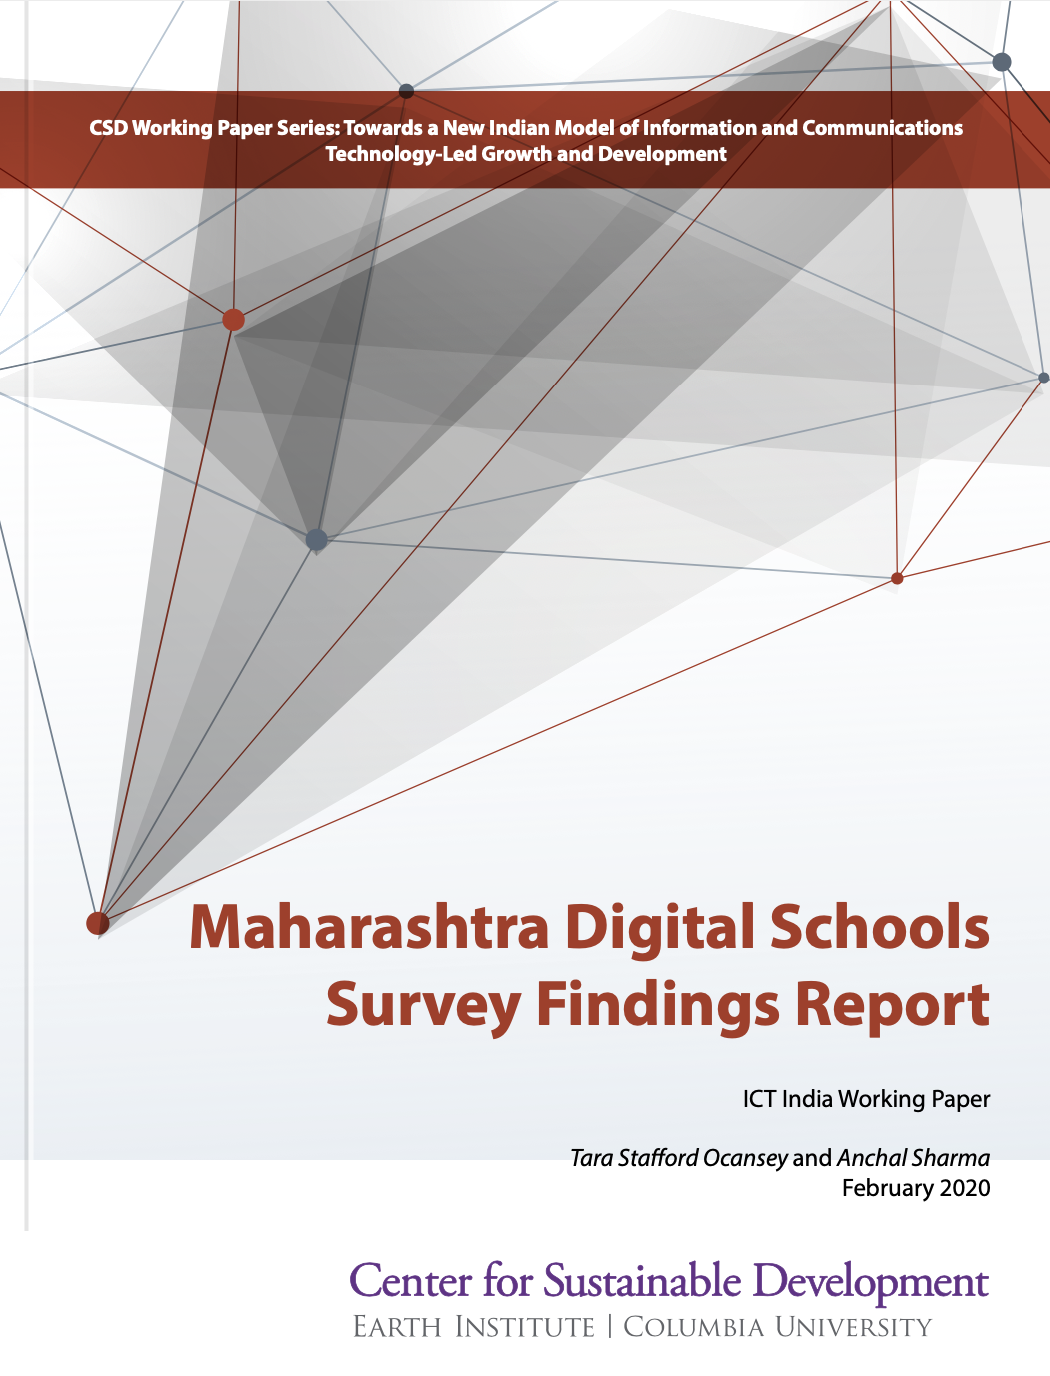 Maharashtra Digital Schools Survey Findings Report